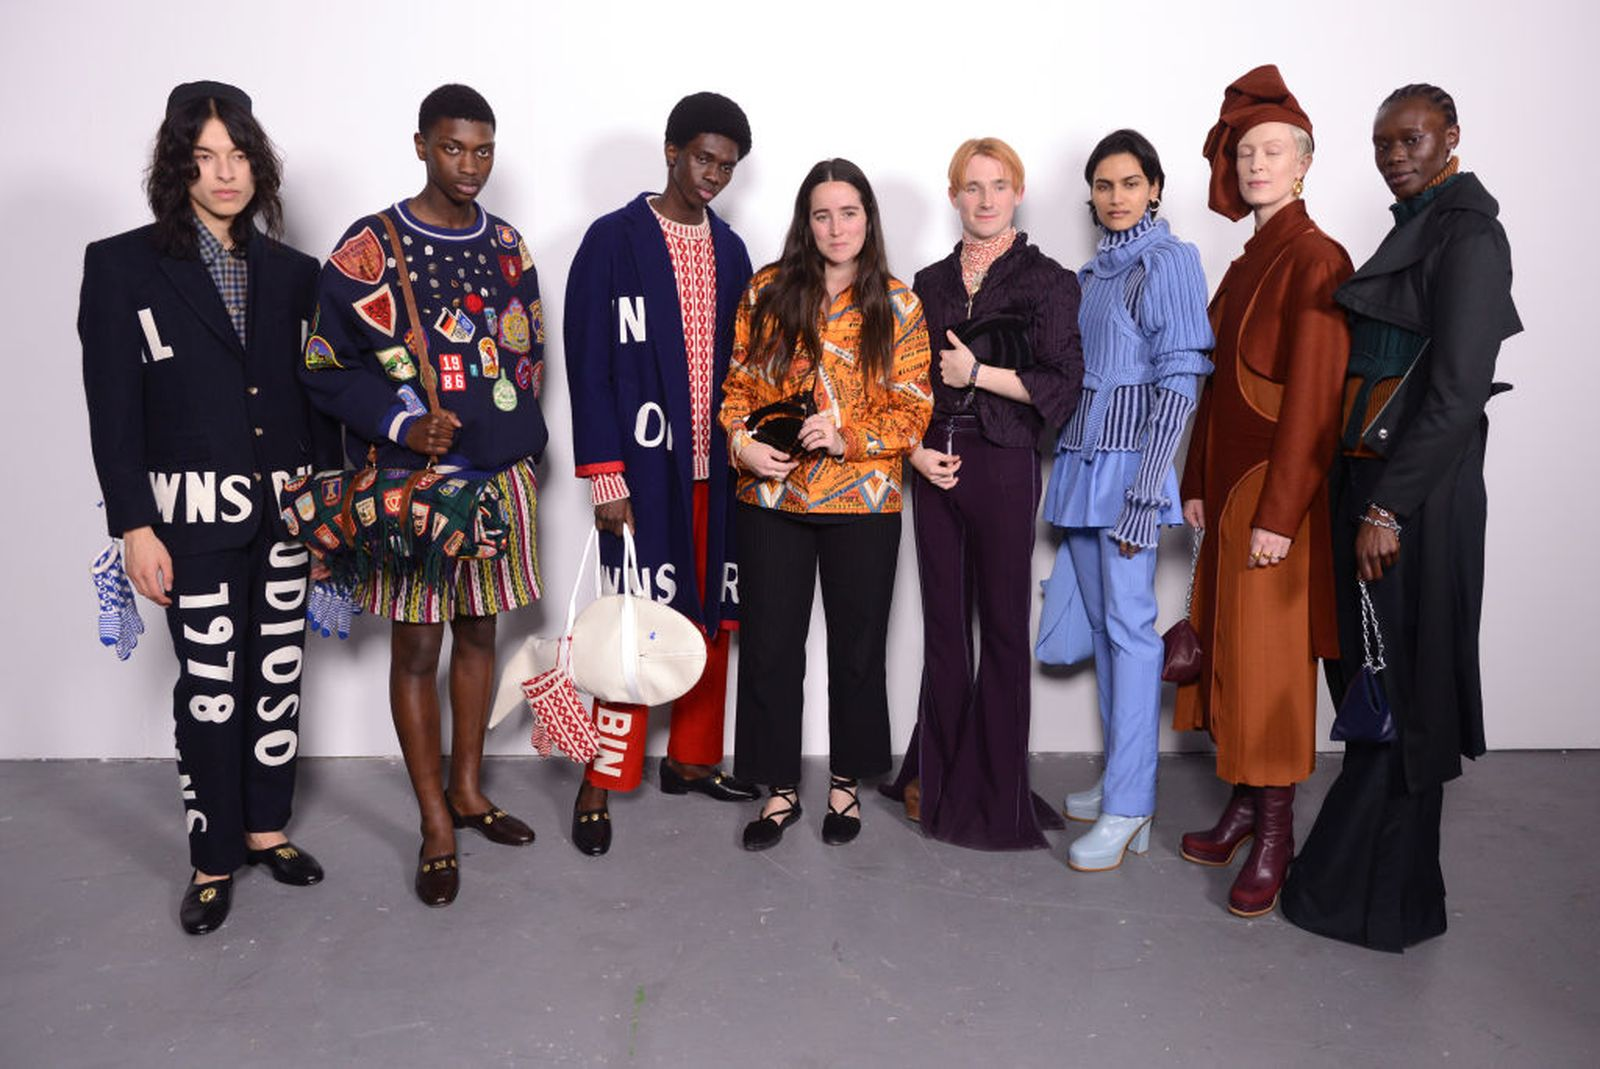 LONDON, ENGLAND - FEBRUARY 17: Winners Bode designer, Emily Adams Bode and designer Richard Malone (C) with models backstage at the International Woolmark Prize 2020 during London Fashion Week February 2020 at Ambika P3 on February 17, 2020 in London, England. (Photo by Joe Maher/Getty Images for Woolmark)